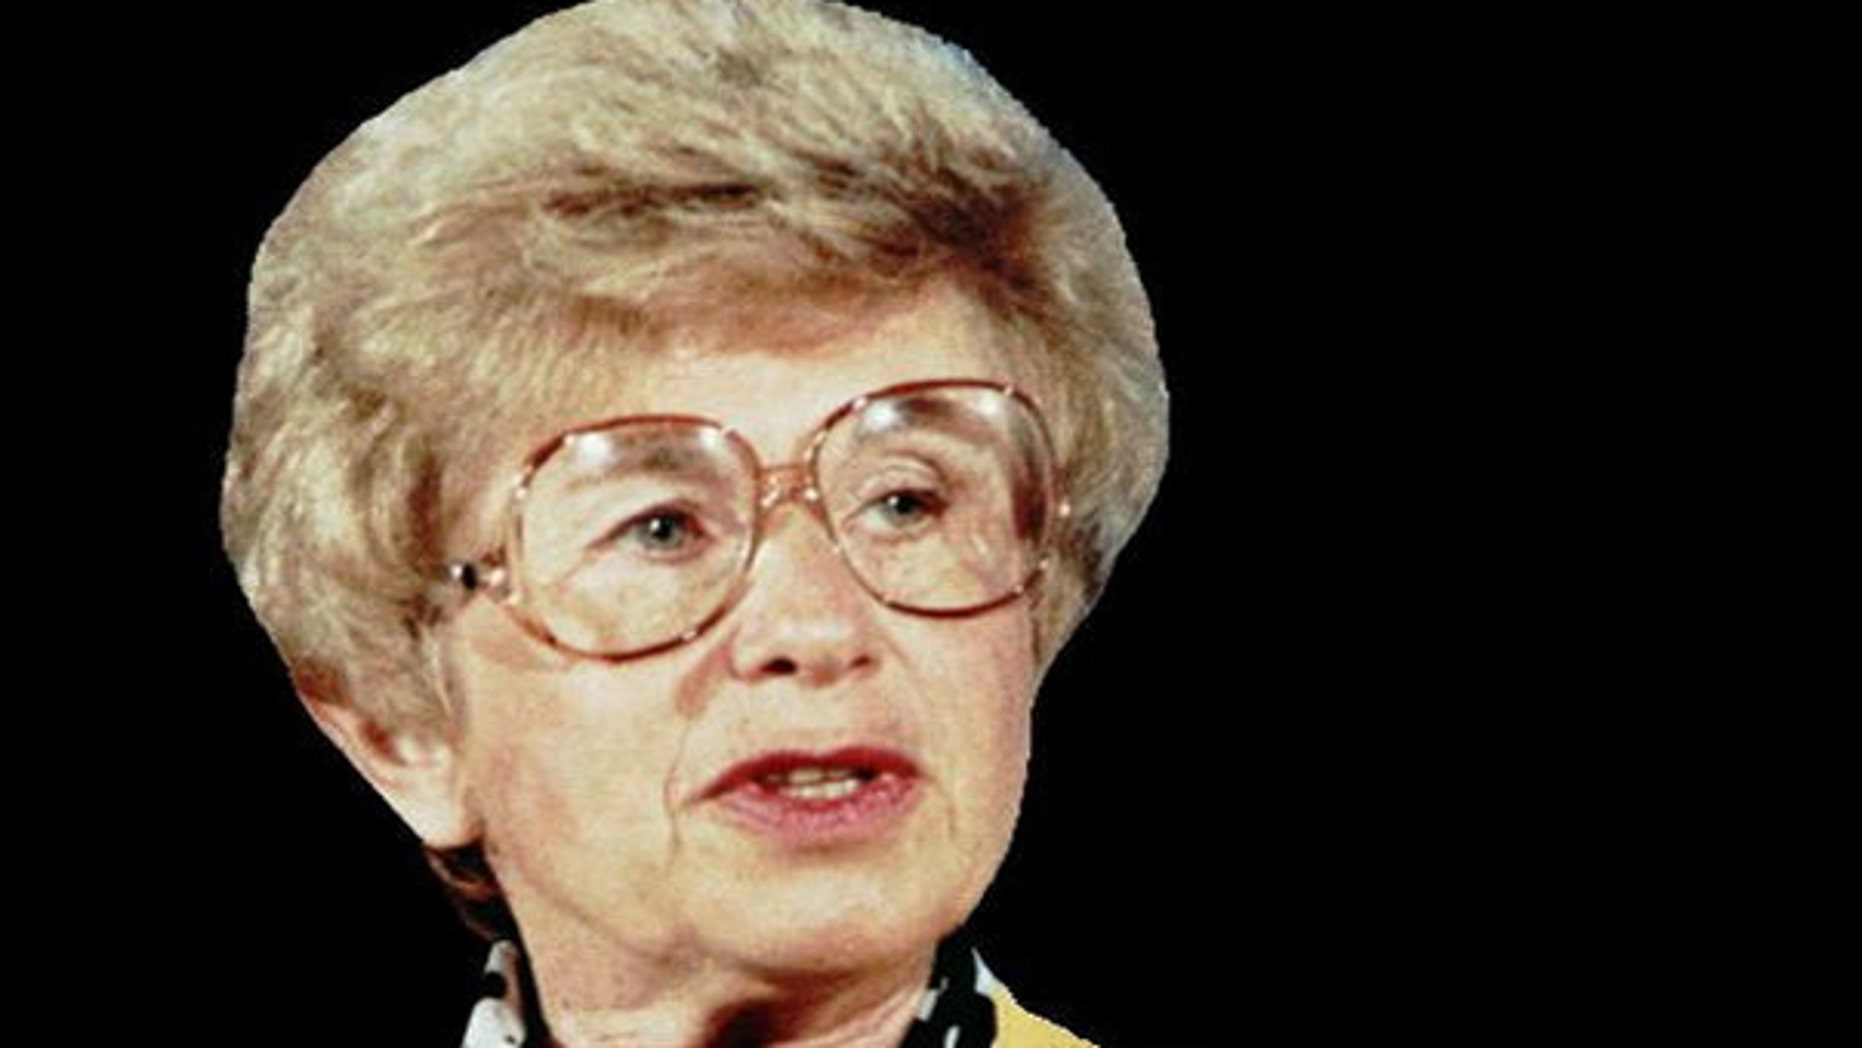 A file photo of Ruth Westheimer in a head shot as Dr. Ruth, April 9, 1986. (AP)